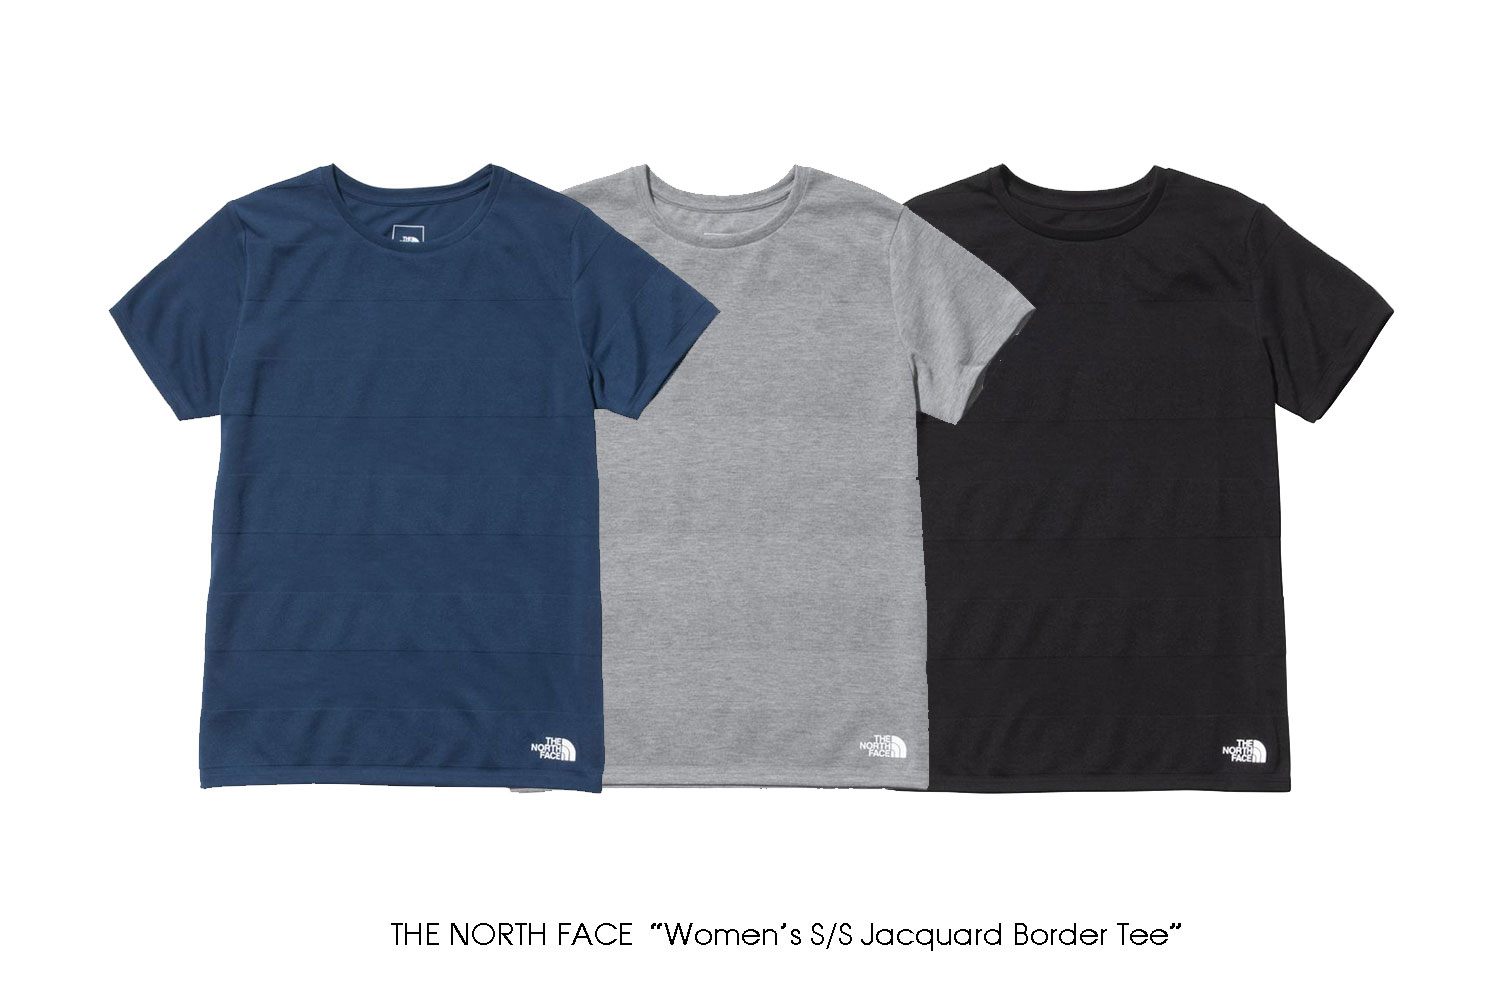 """THE NORTH FACE """"Women's S/S Jacquard Border Tee"""""""